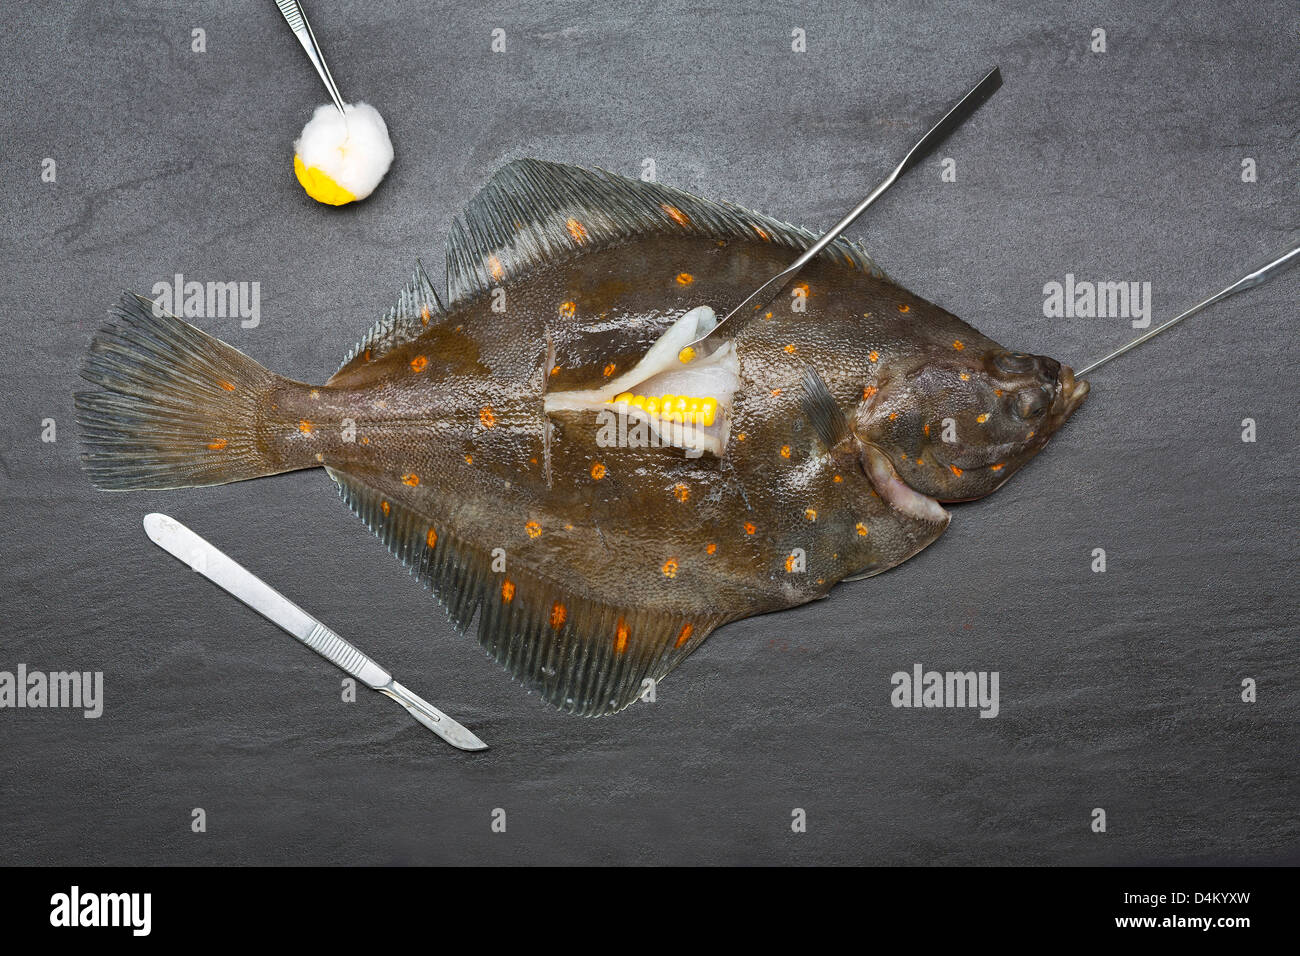 Fresh fish surgically stuffed with corn - Stock Image